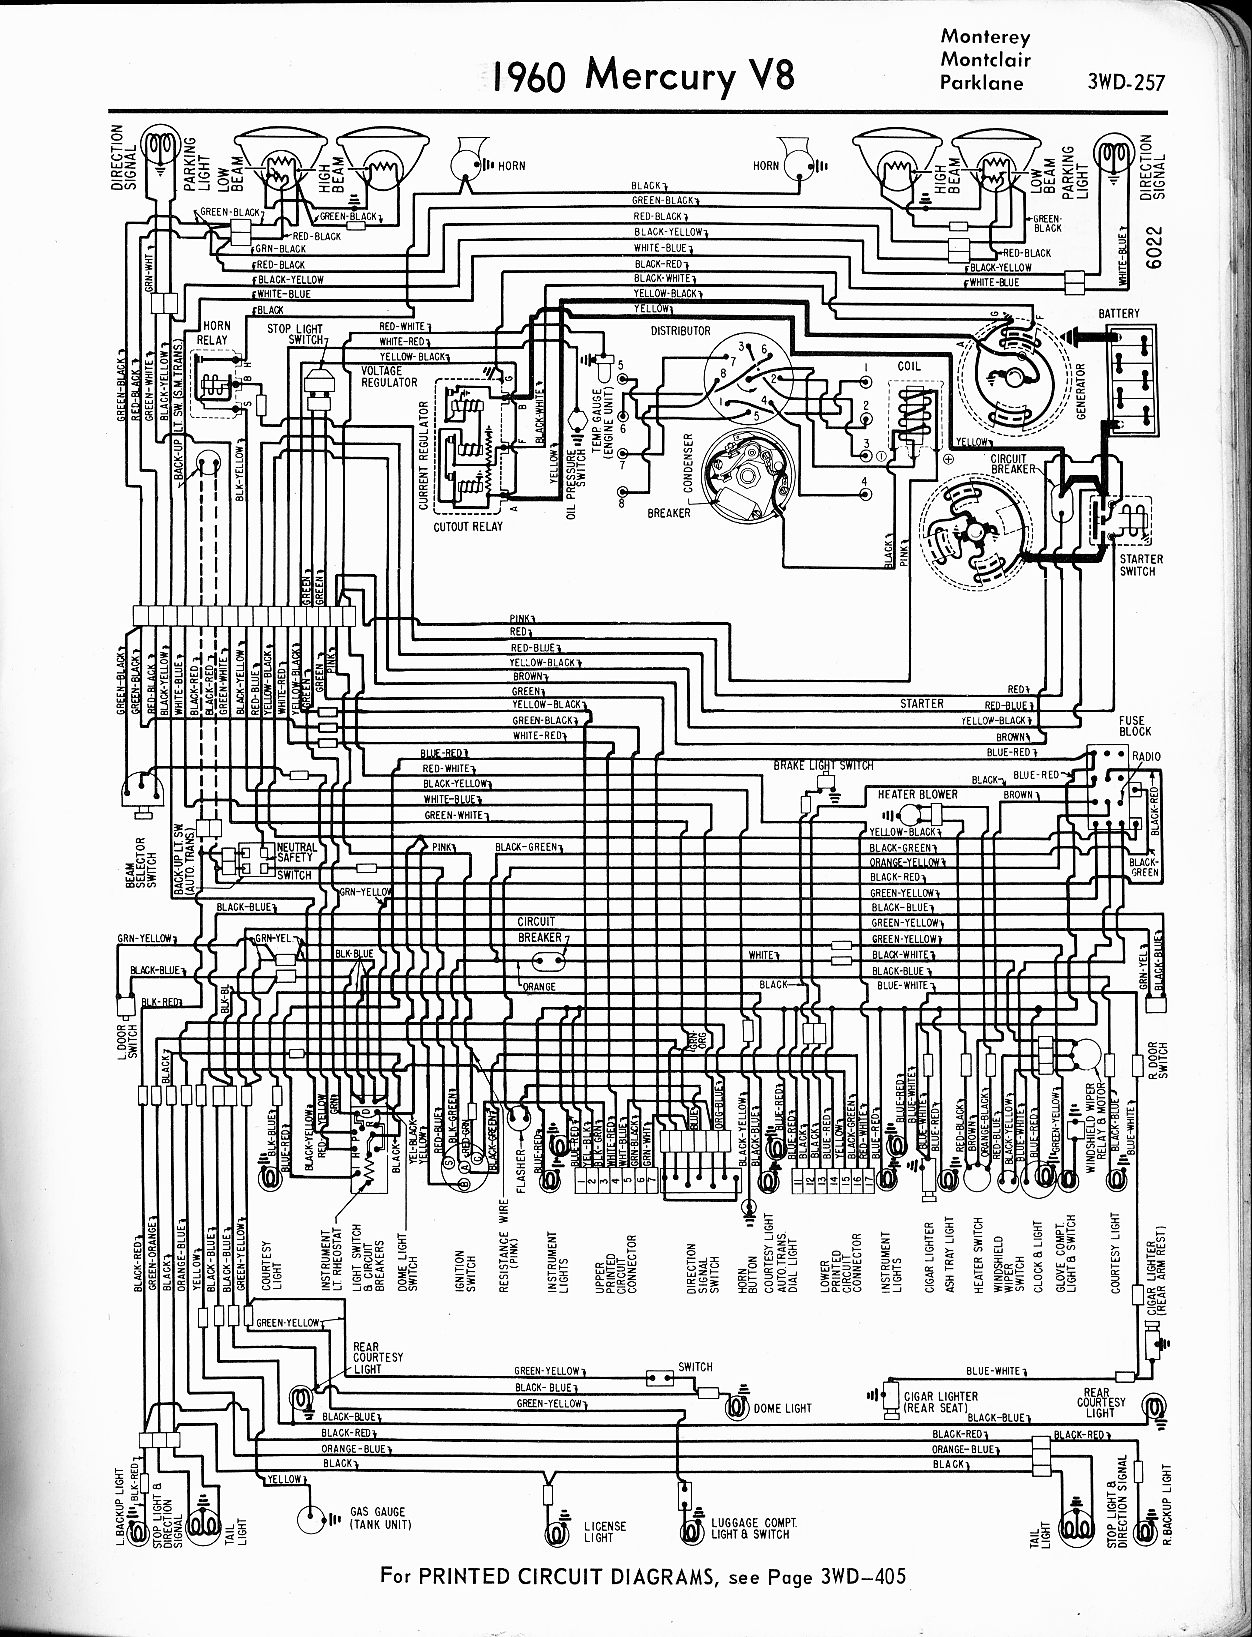 mercury wiring diagrams the old car manual project mercury wiring diagrams 1957 · 1958 · 1959 · 1960 monterey montclair parklane